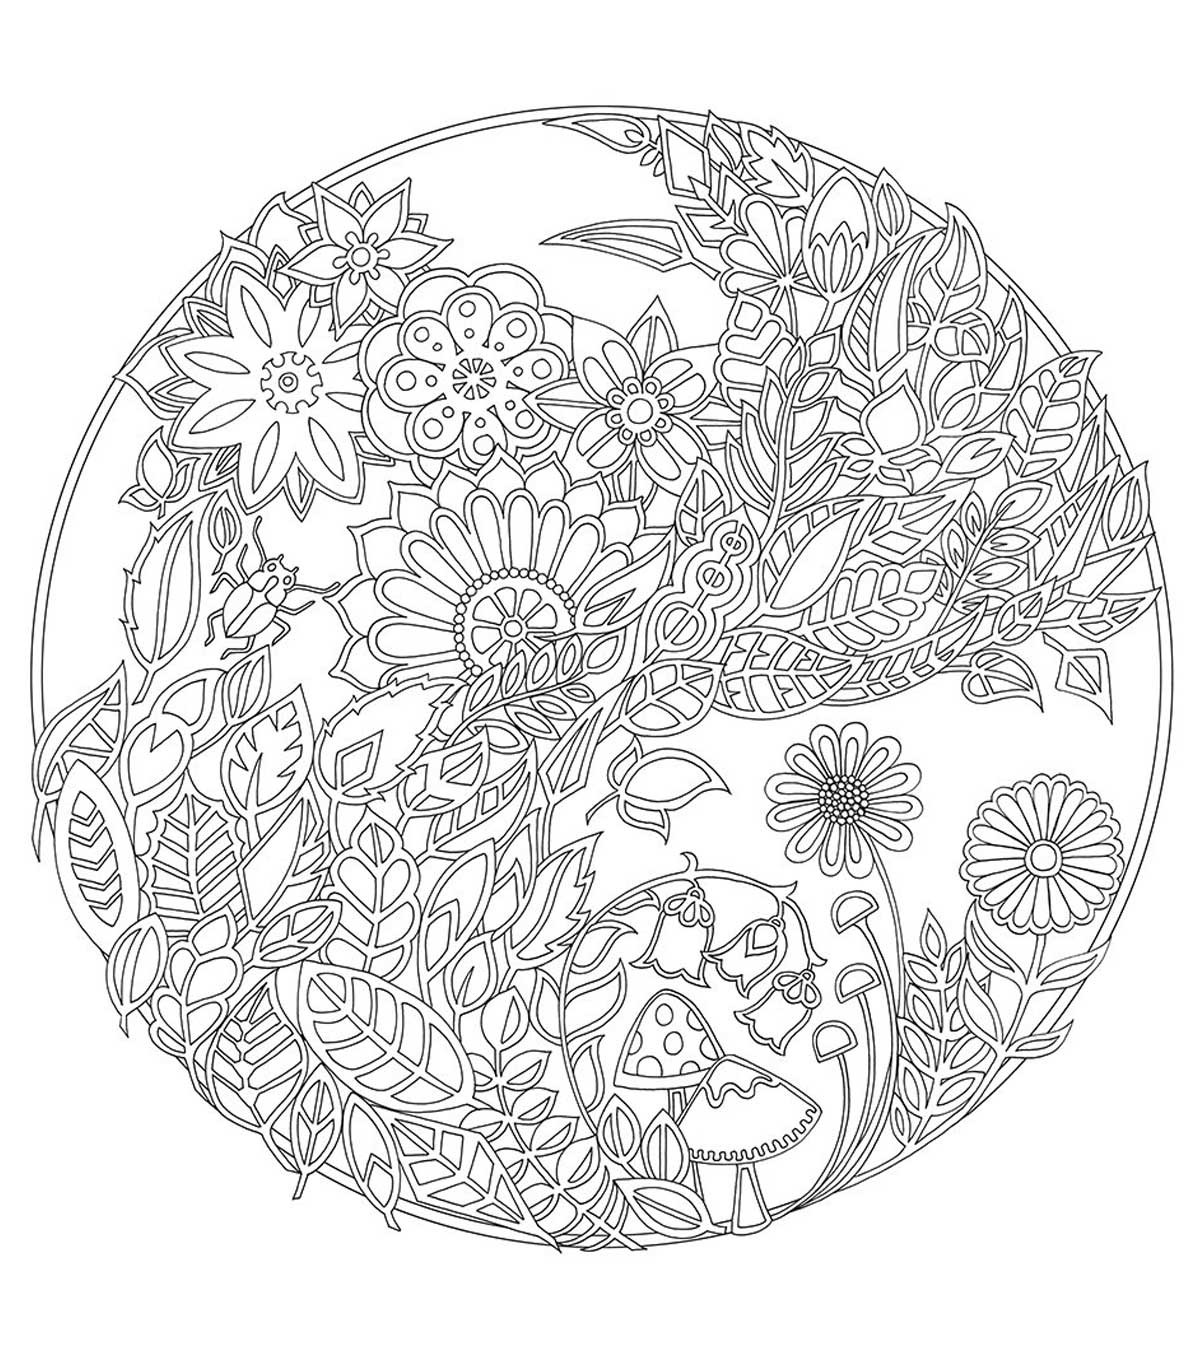 Best ideas about Enchanted Forest Coloring Sheets For Kids . Save or Pin Chronicle Books Enchanted Forest Coloring Book JoAnn Now.